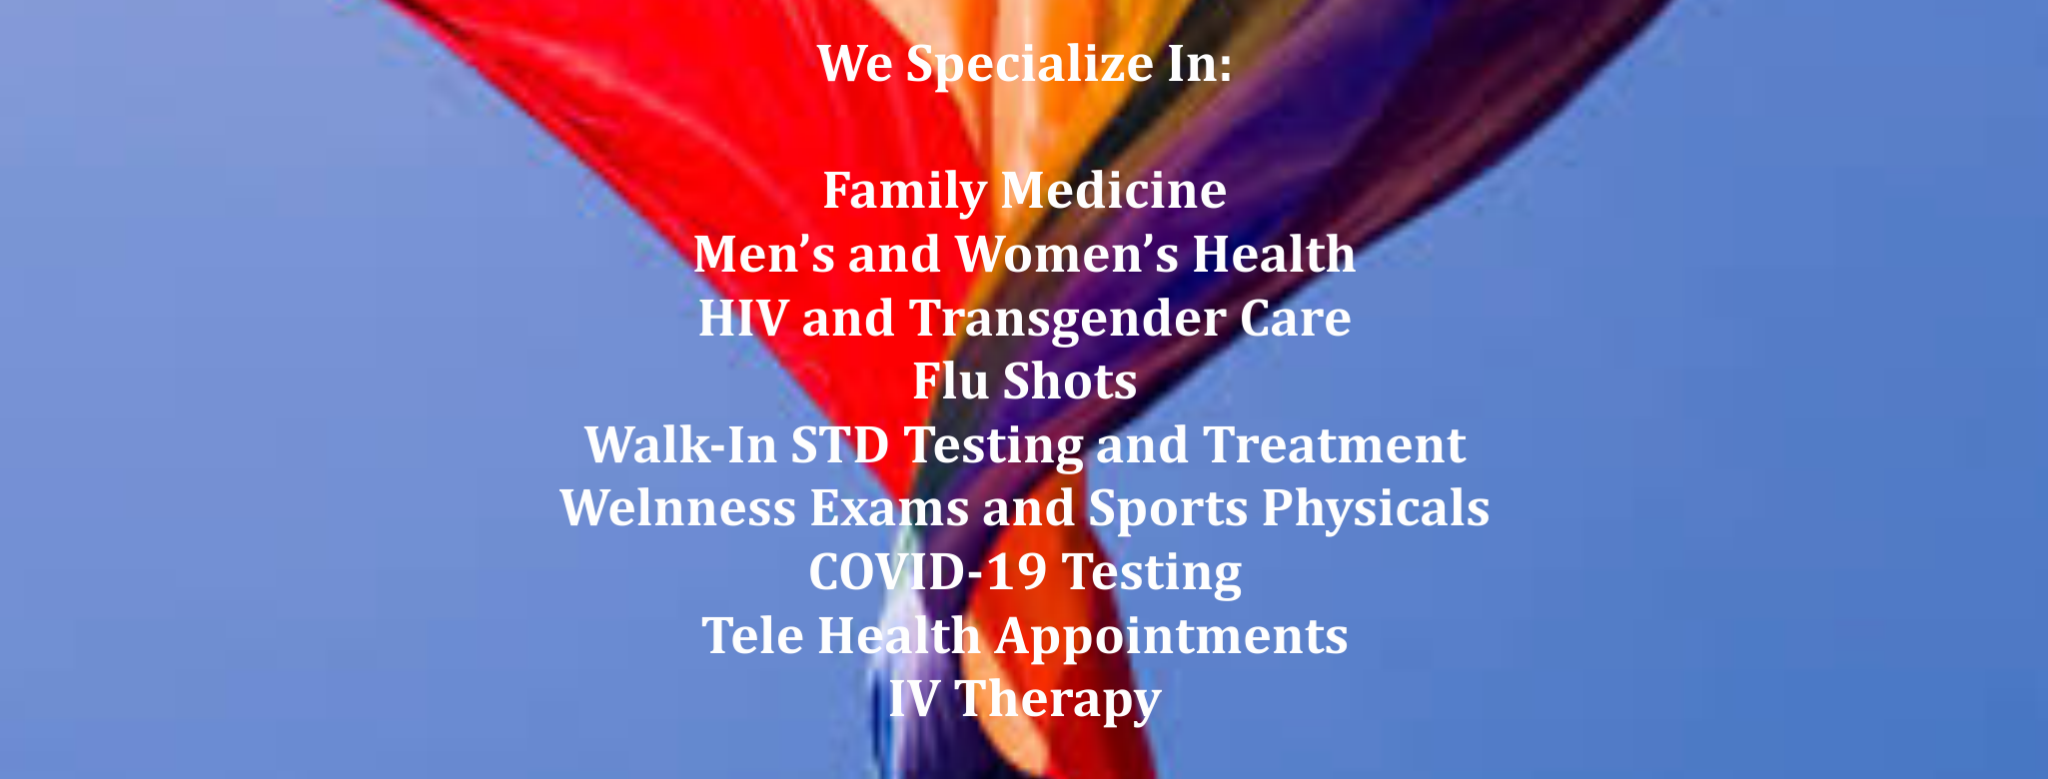 be well family care treatments including a listing of family medicine, women's health, HIV and Transgender Care, Flu Shots. Walk In STD Testing and Treatment, Wellness Exams and Sports Physicals, COVID-19 Testing, Tele Health Appointments and IV therapy